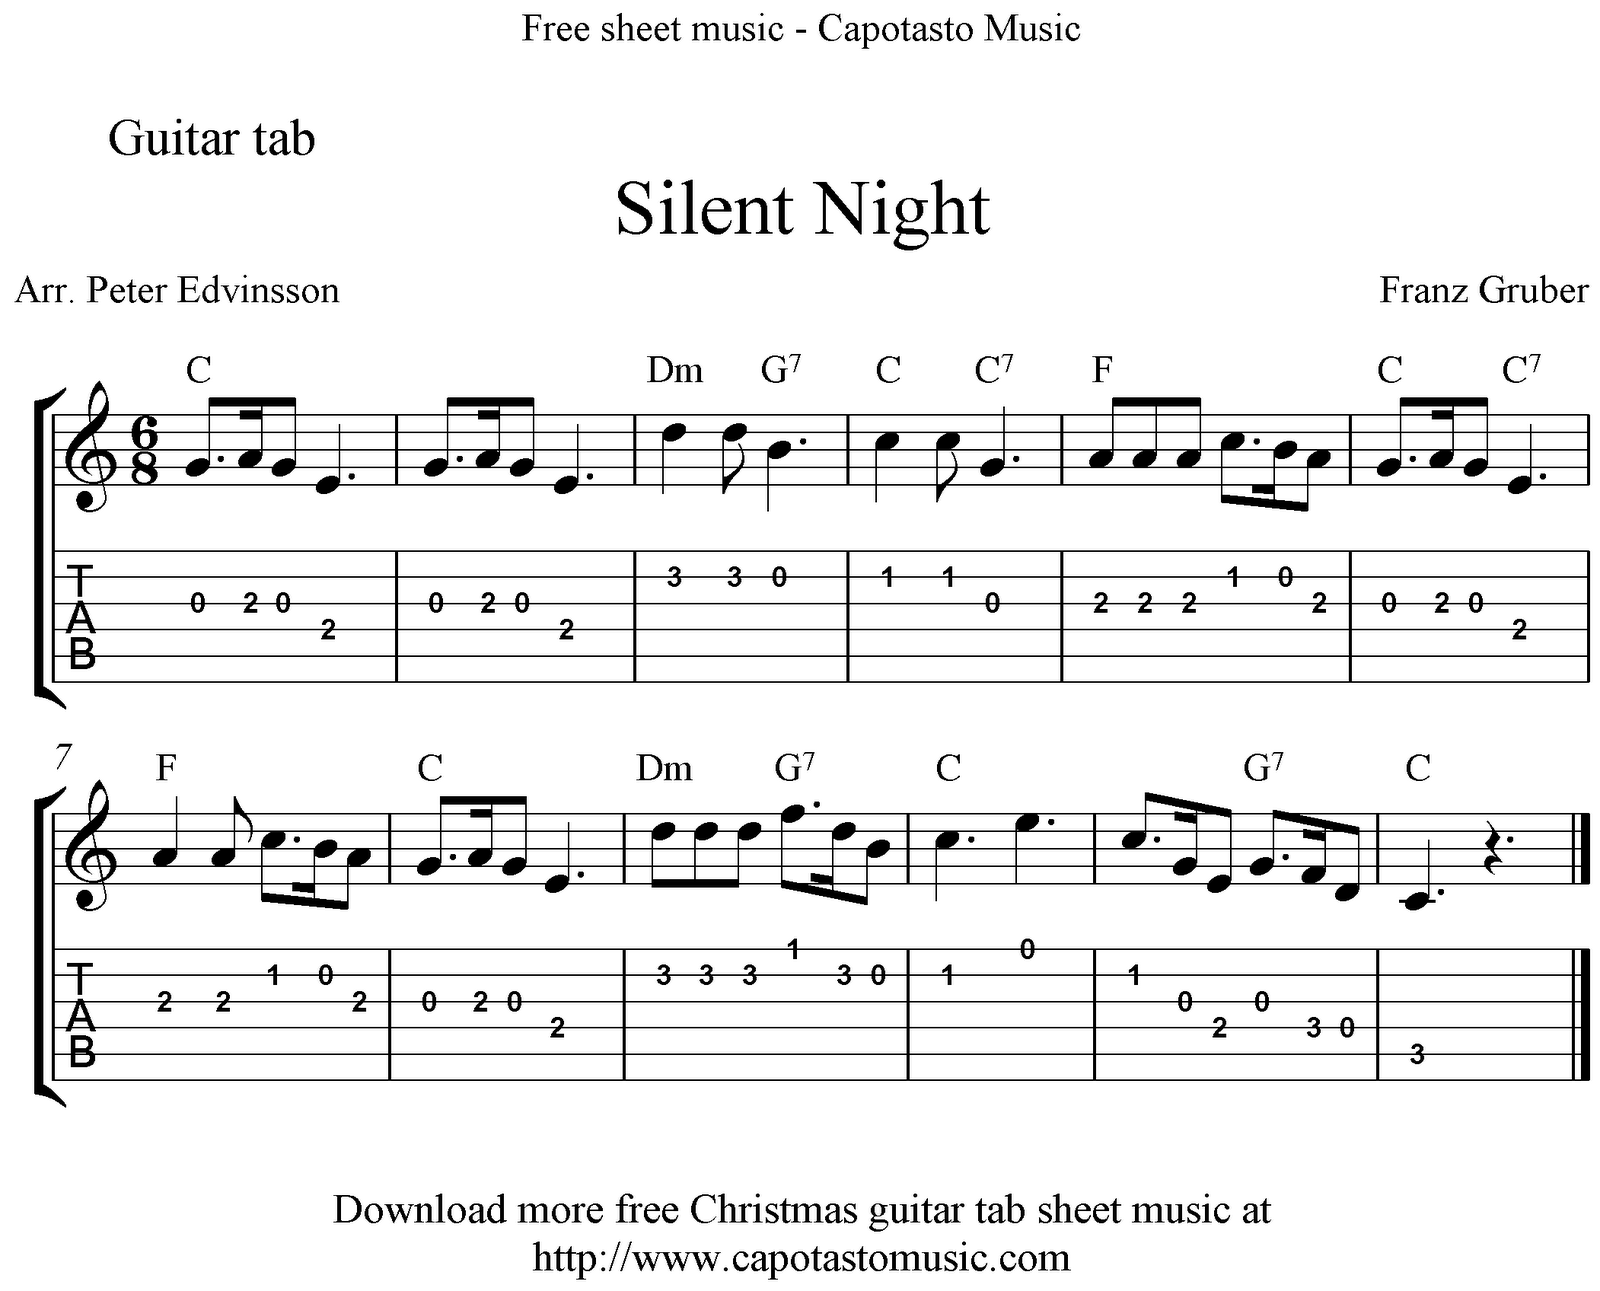 Silent Night, easy free Christmas guitar tab sheet music